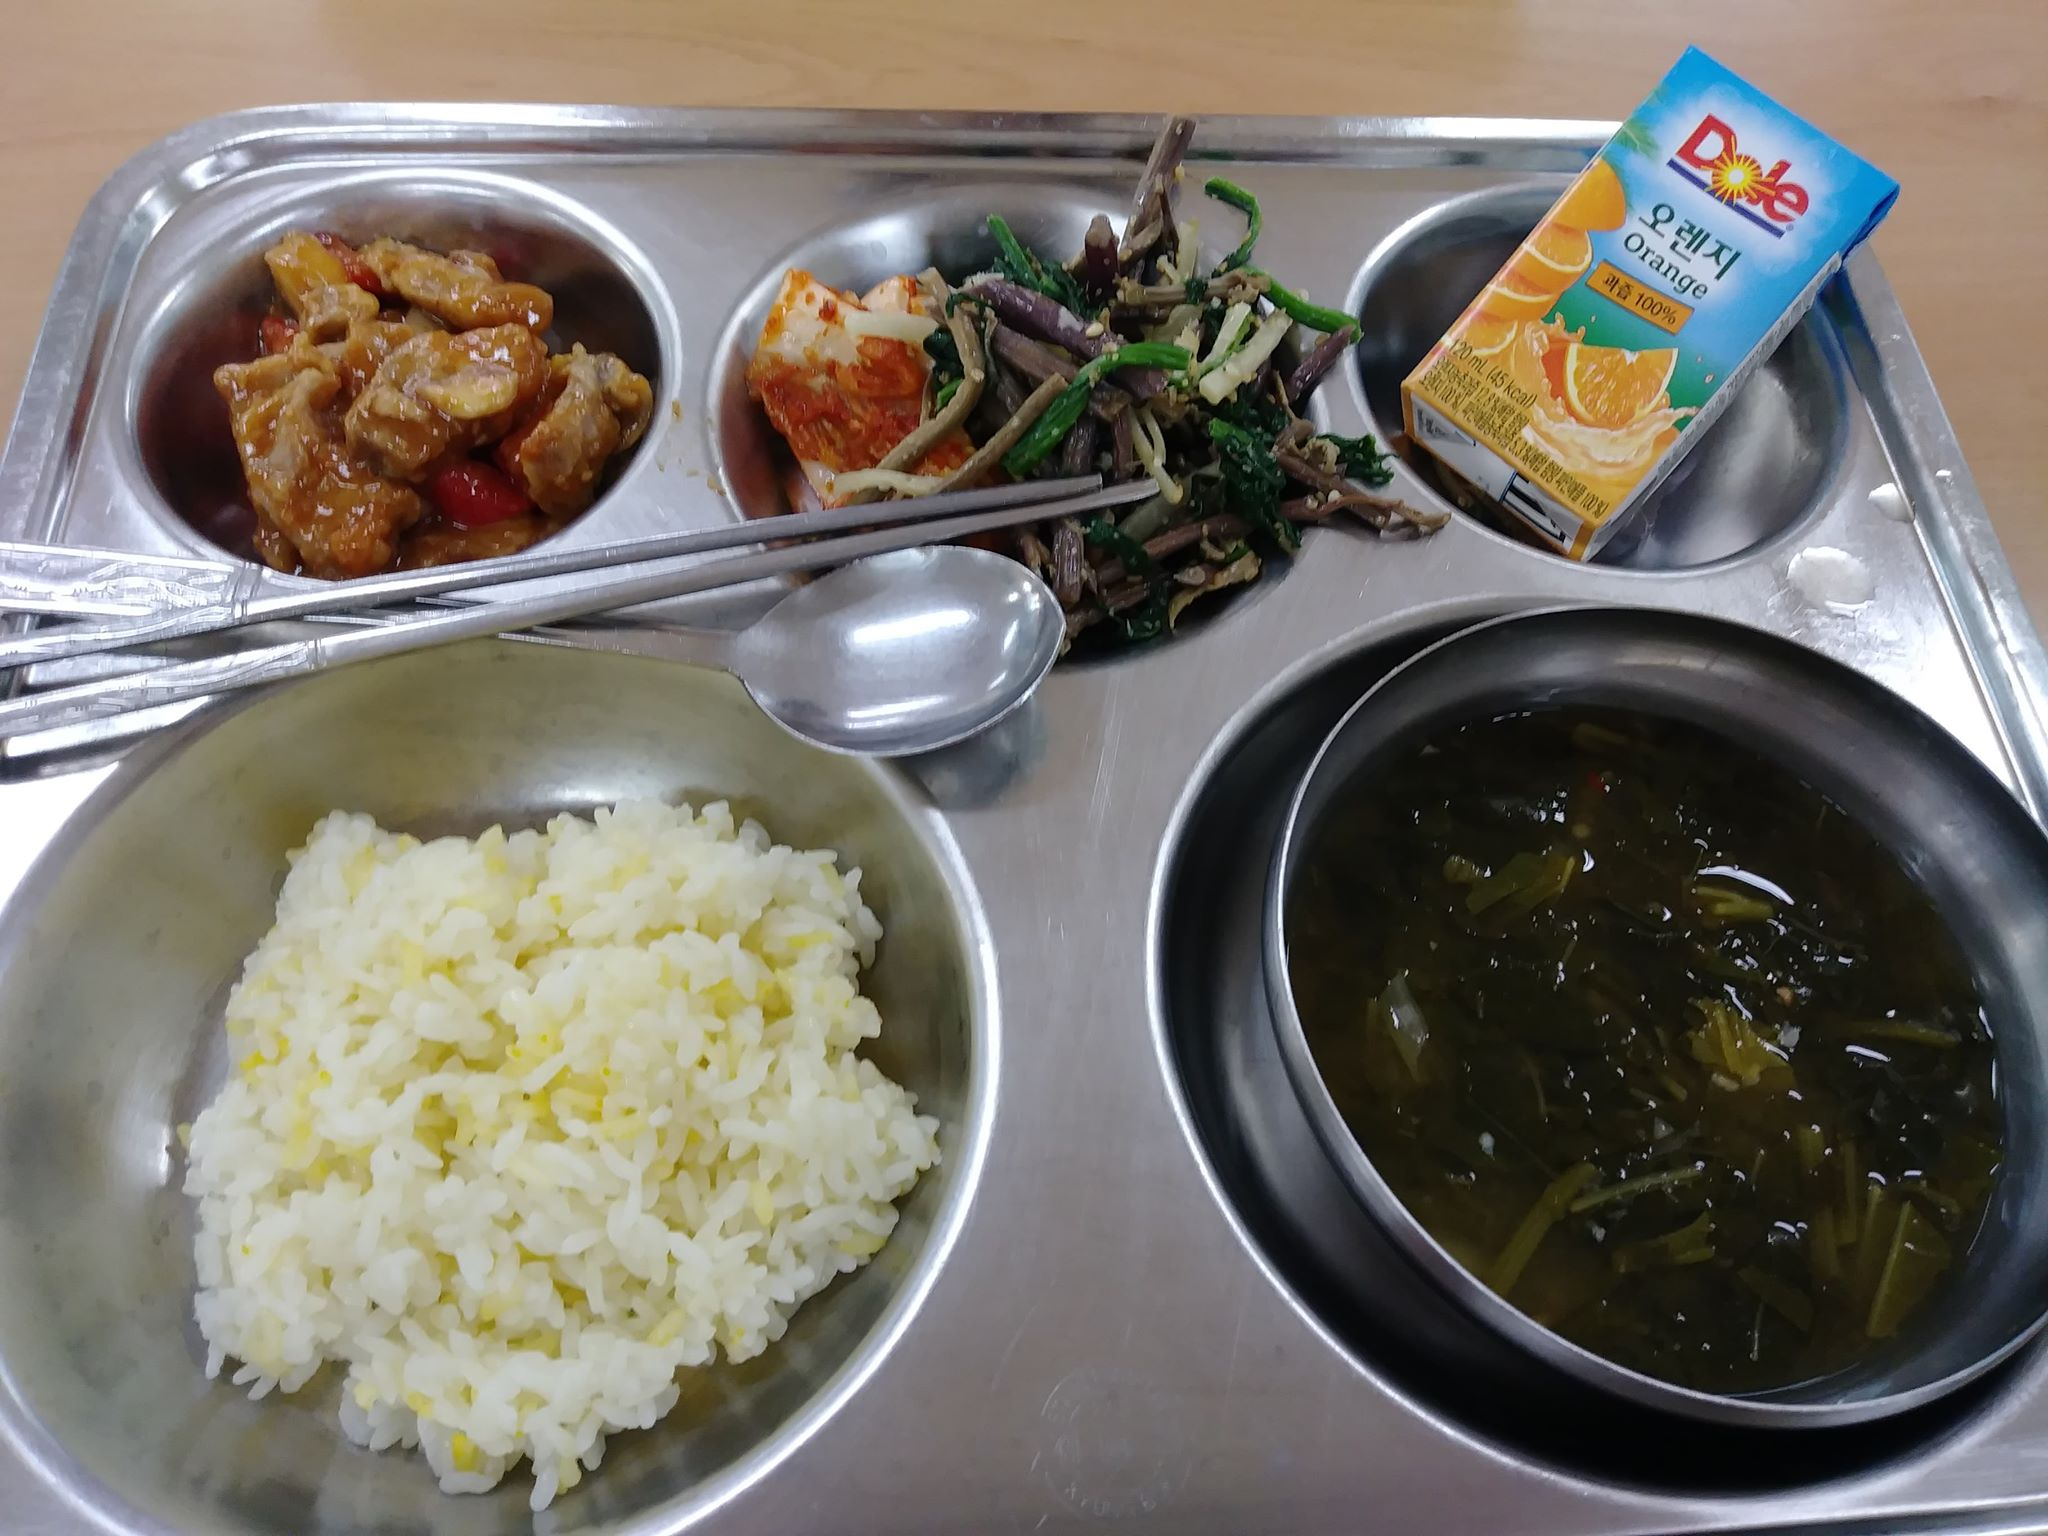 Food_SchoolFoodKorea_body03.jpg.jpg